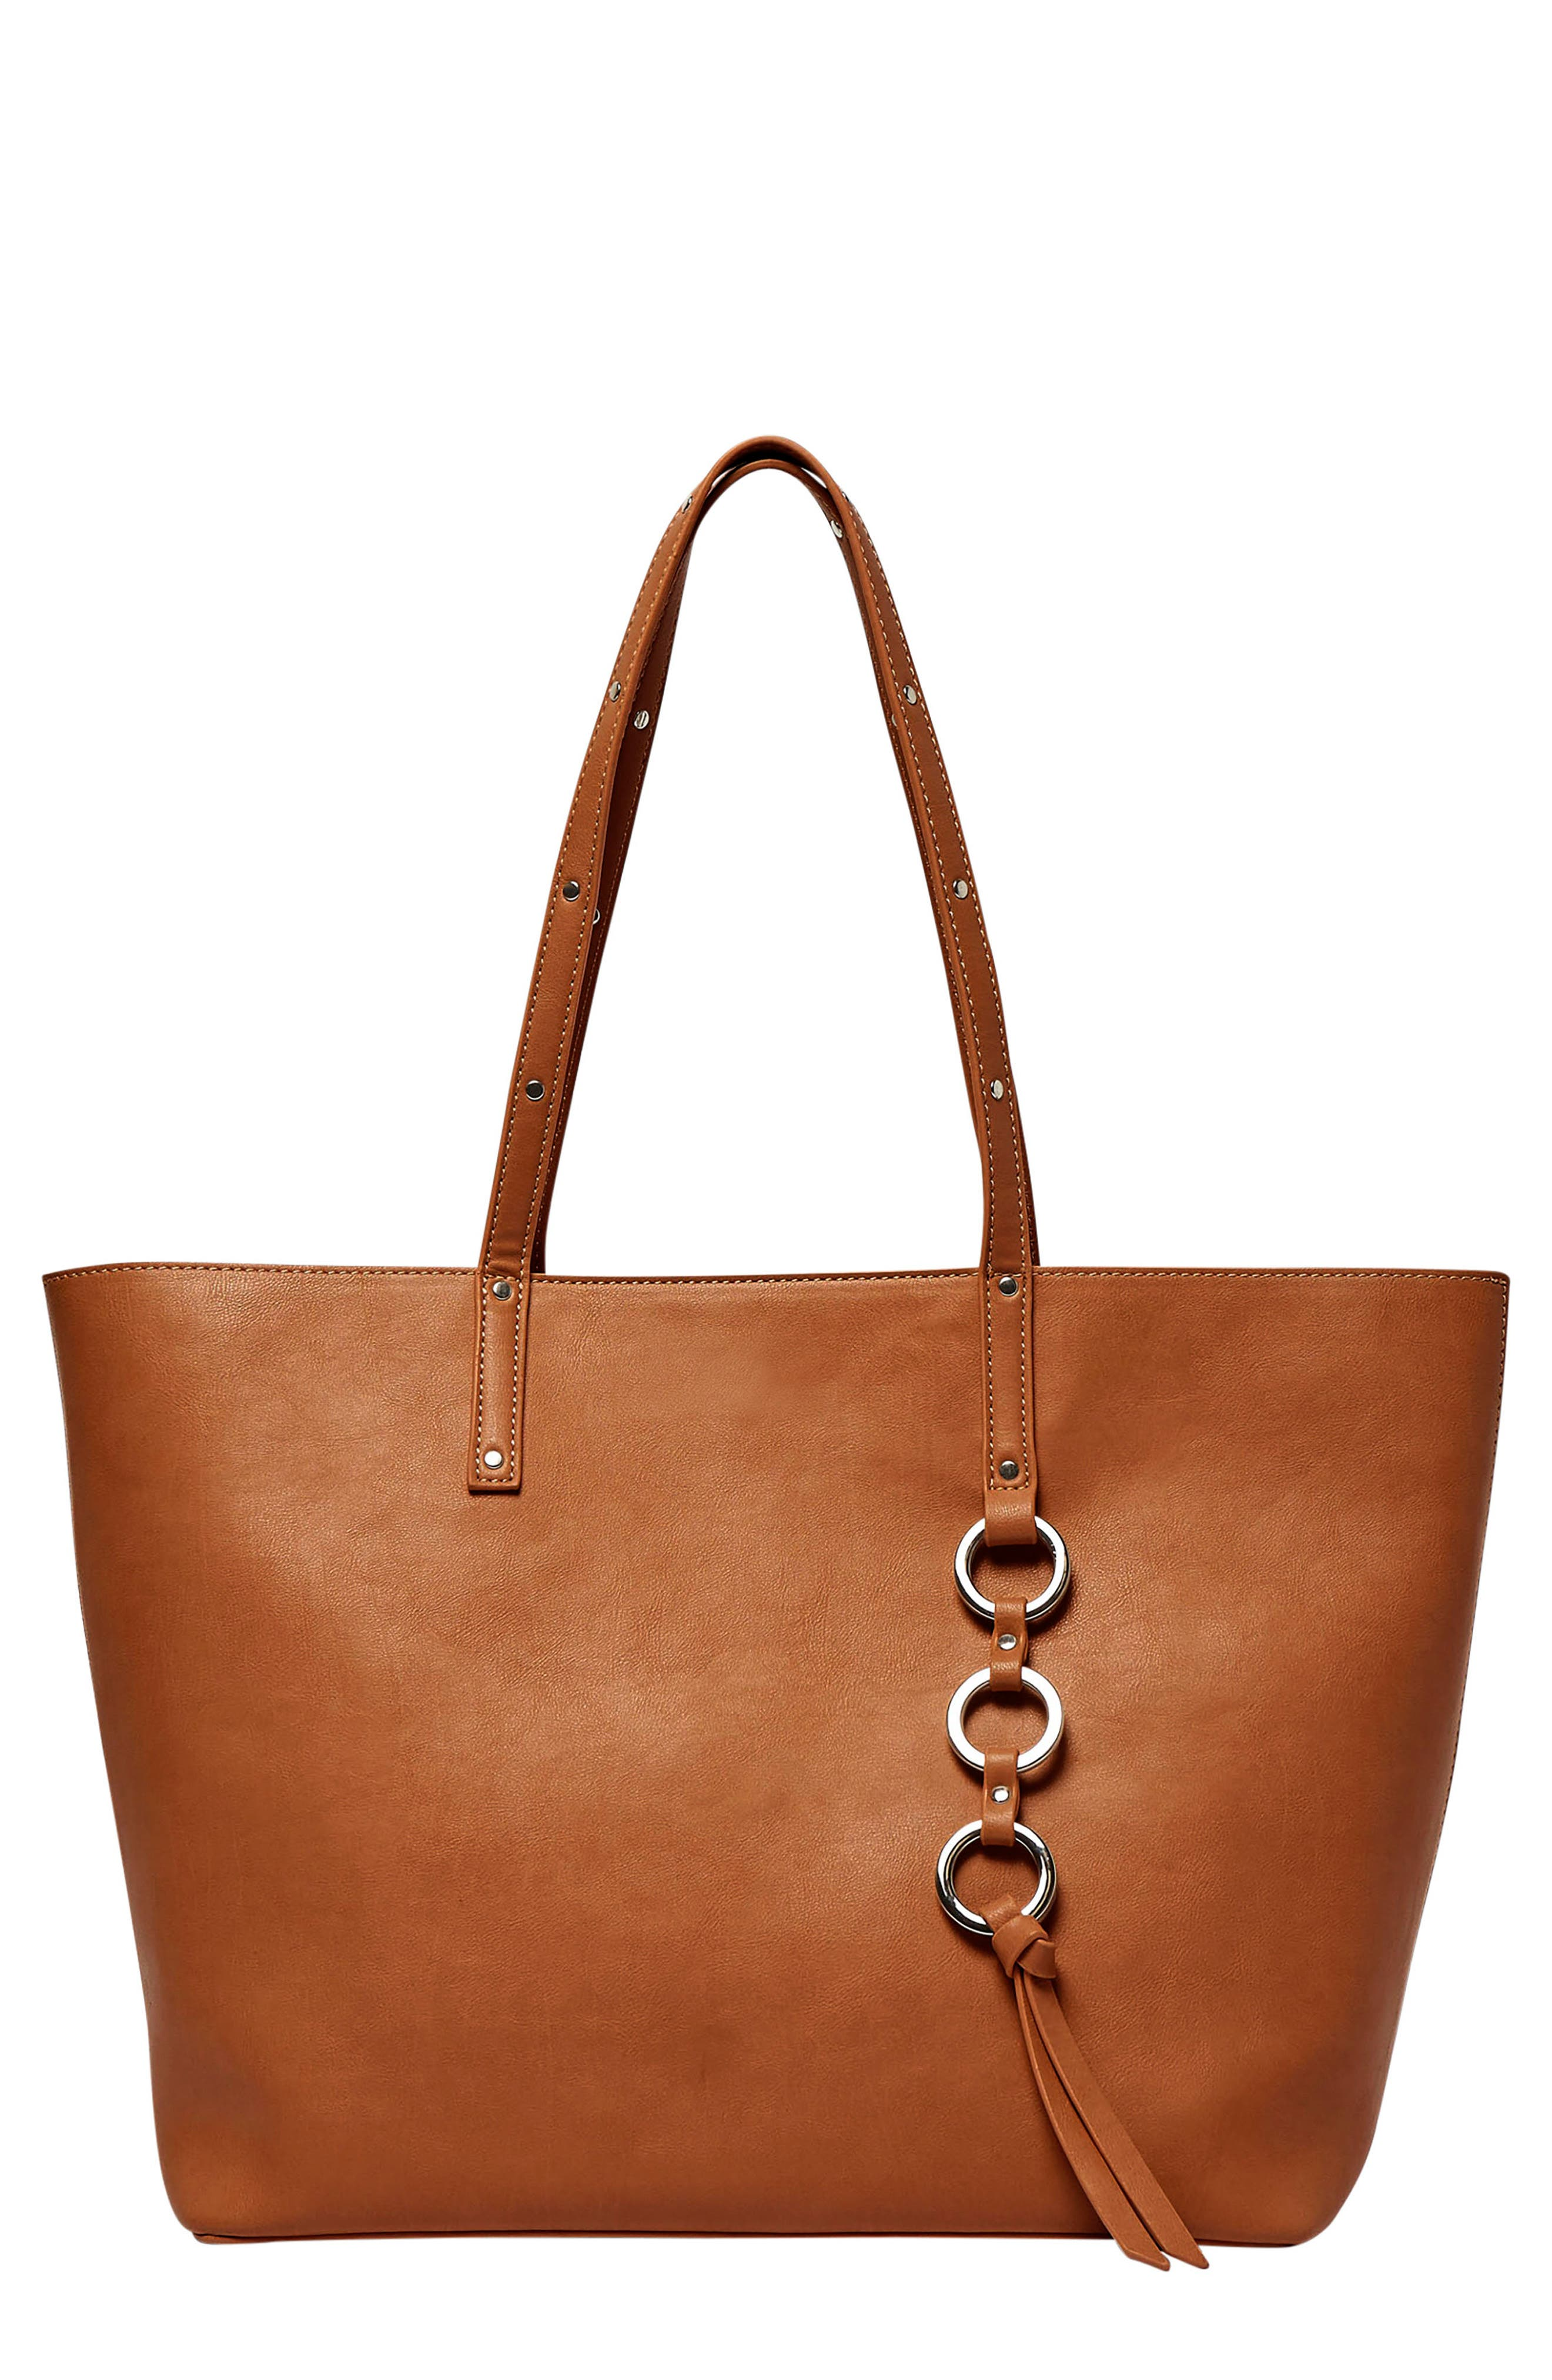 Wild Fire Vegan Leather Tote,                         Main,                         color,